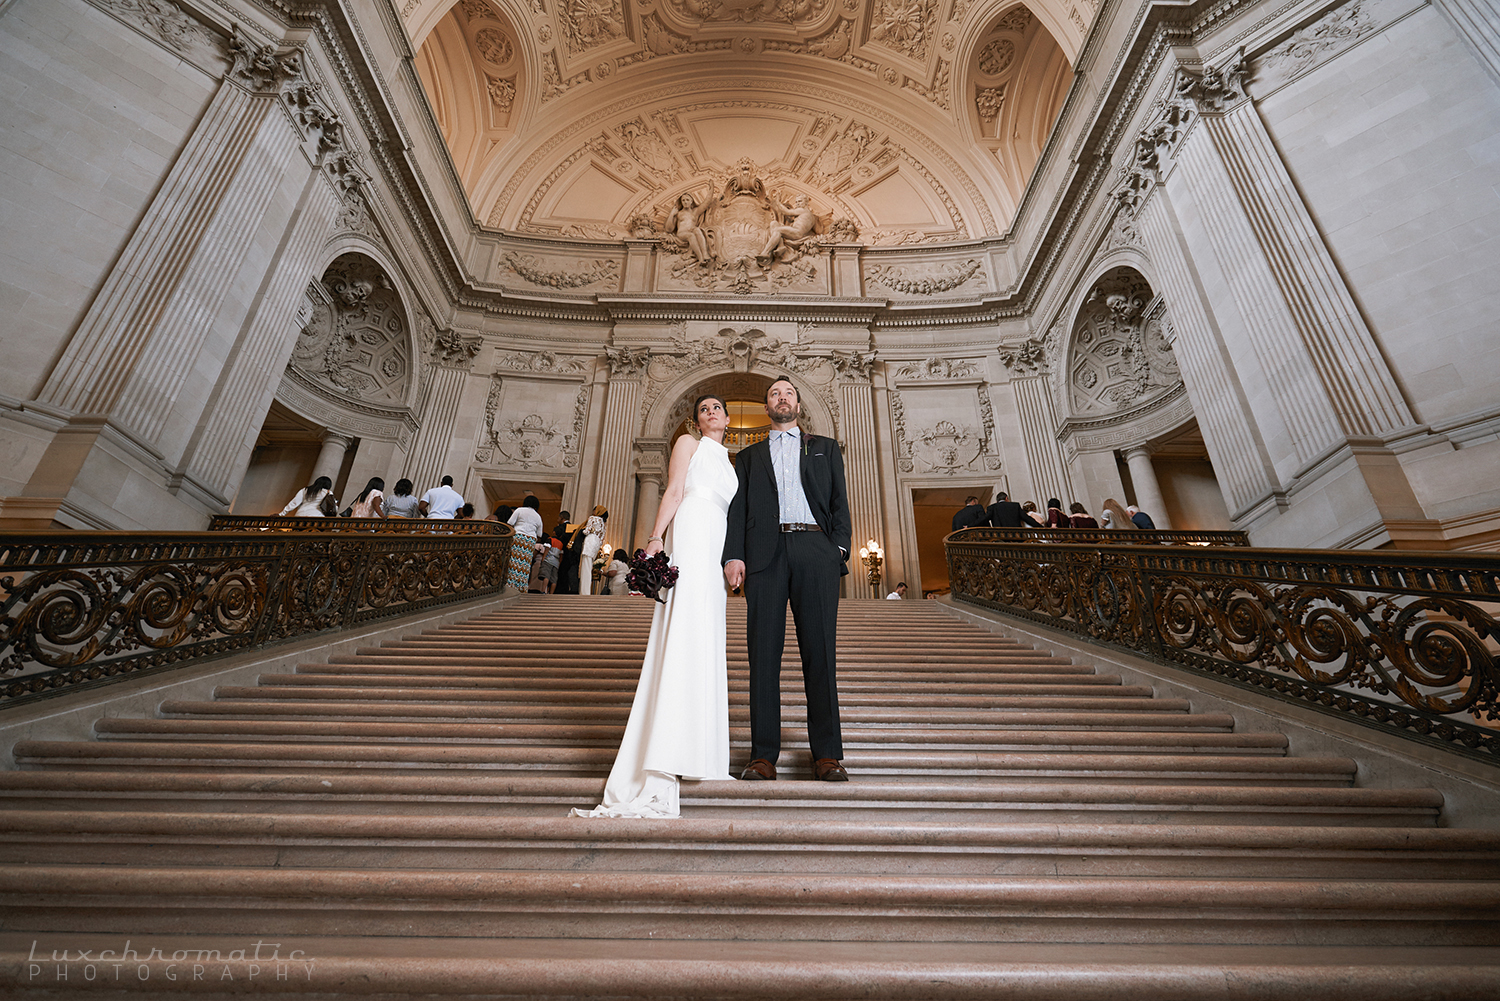 040318_Erin_Brent_0362-weddingdress-bride-weddingphotography-weddingphotographer-bridal-groom-wedding-engagementring-proposal-brides-elopement-sonyalpha-sony-sonya9-sonya7riii-sanfrancisco-sf-bayarea-photographer-profoto-city-hall.jpg